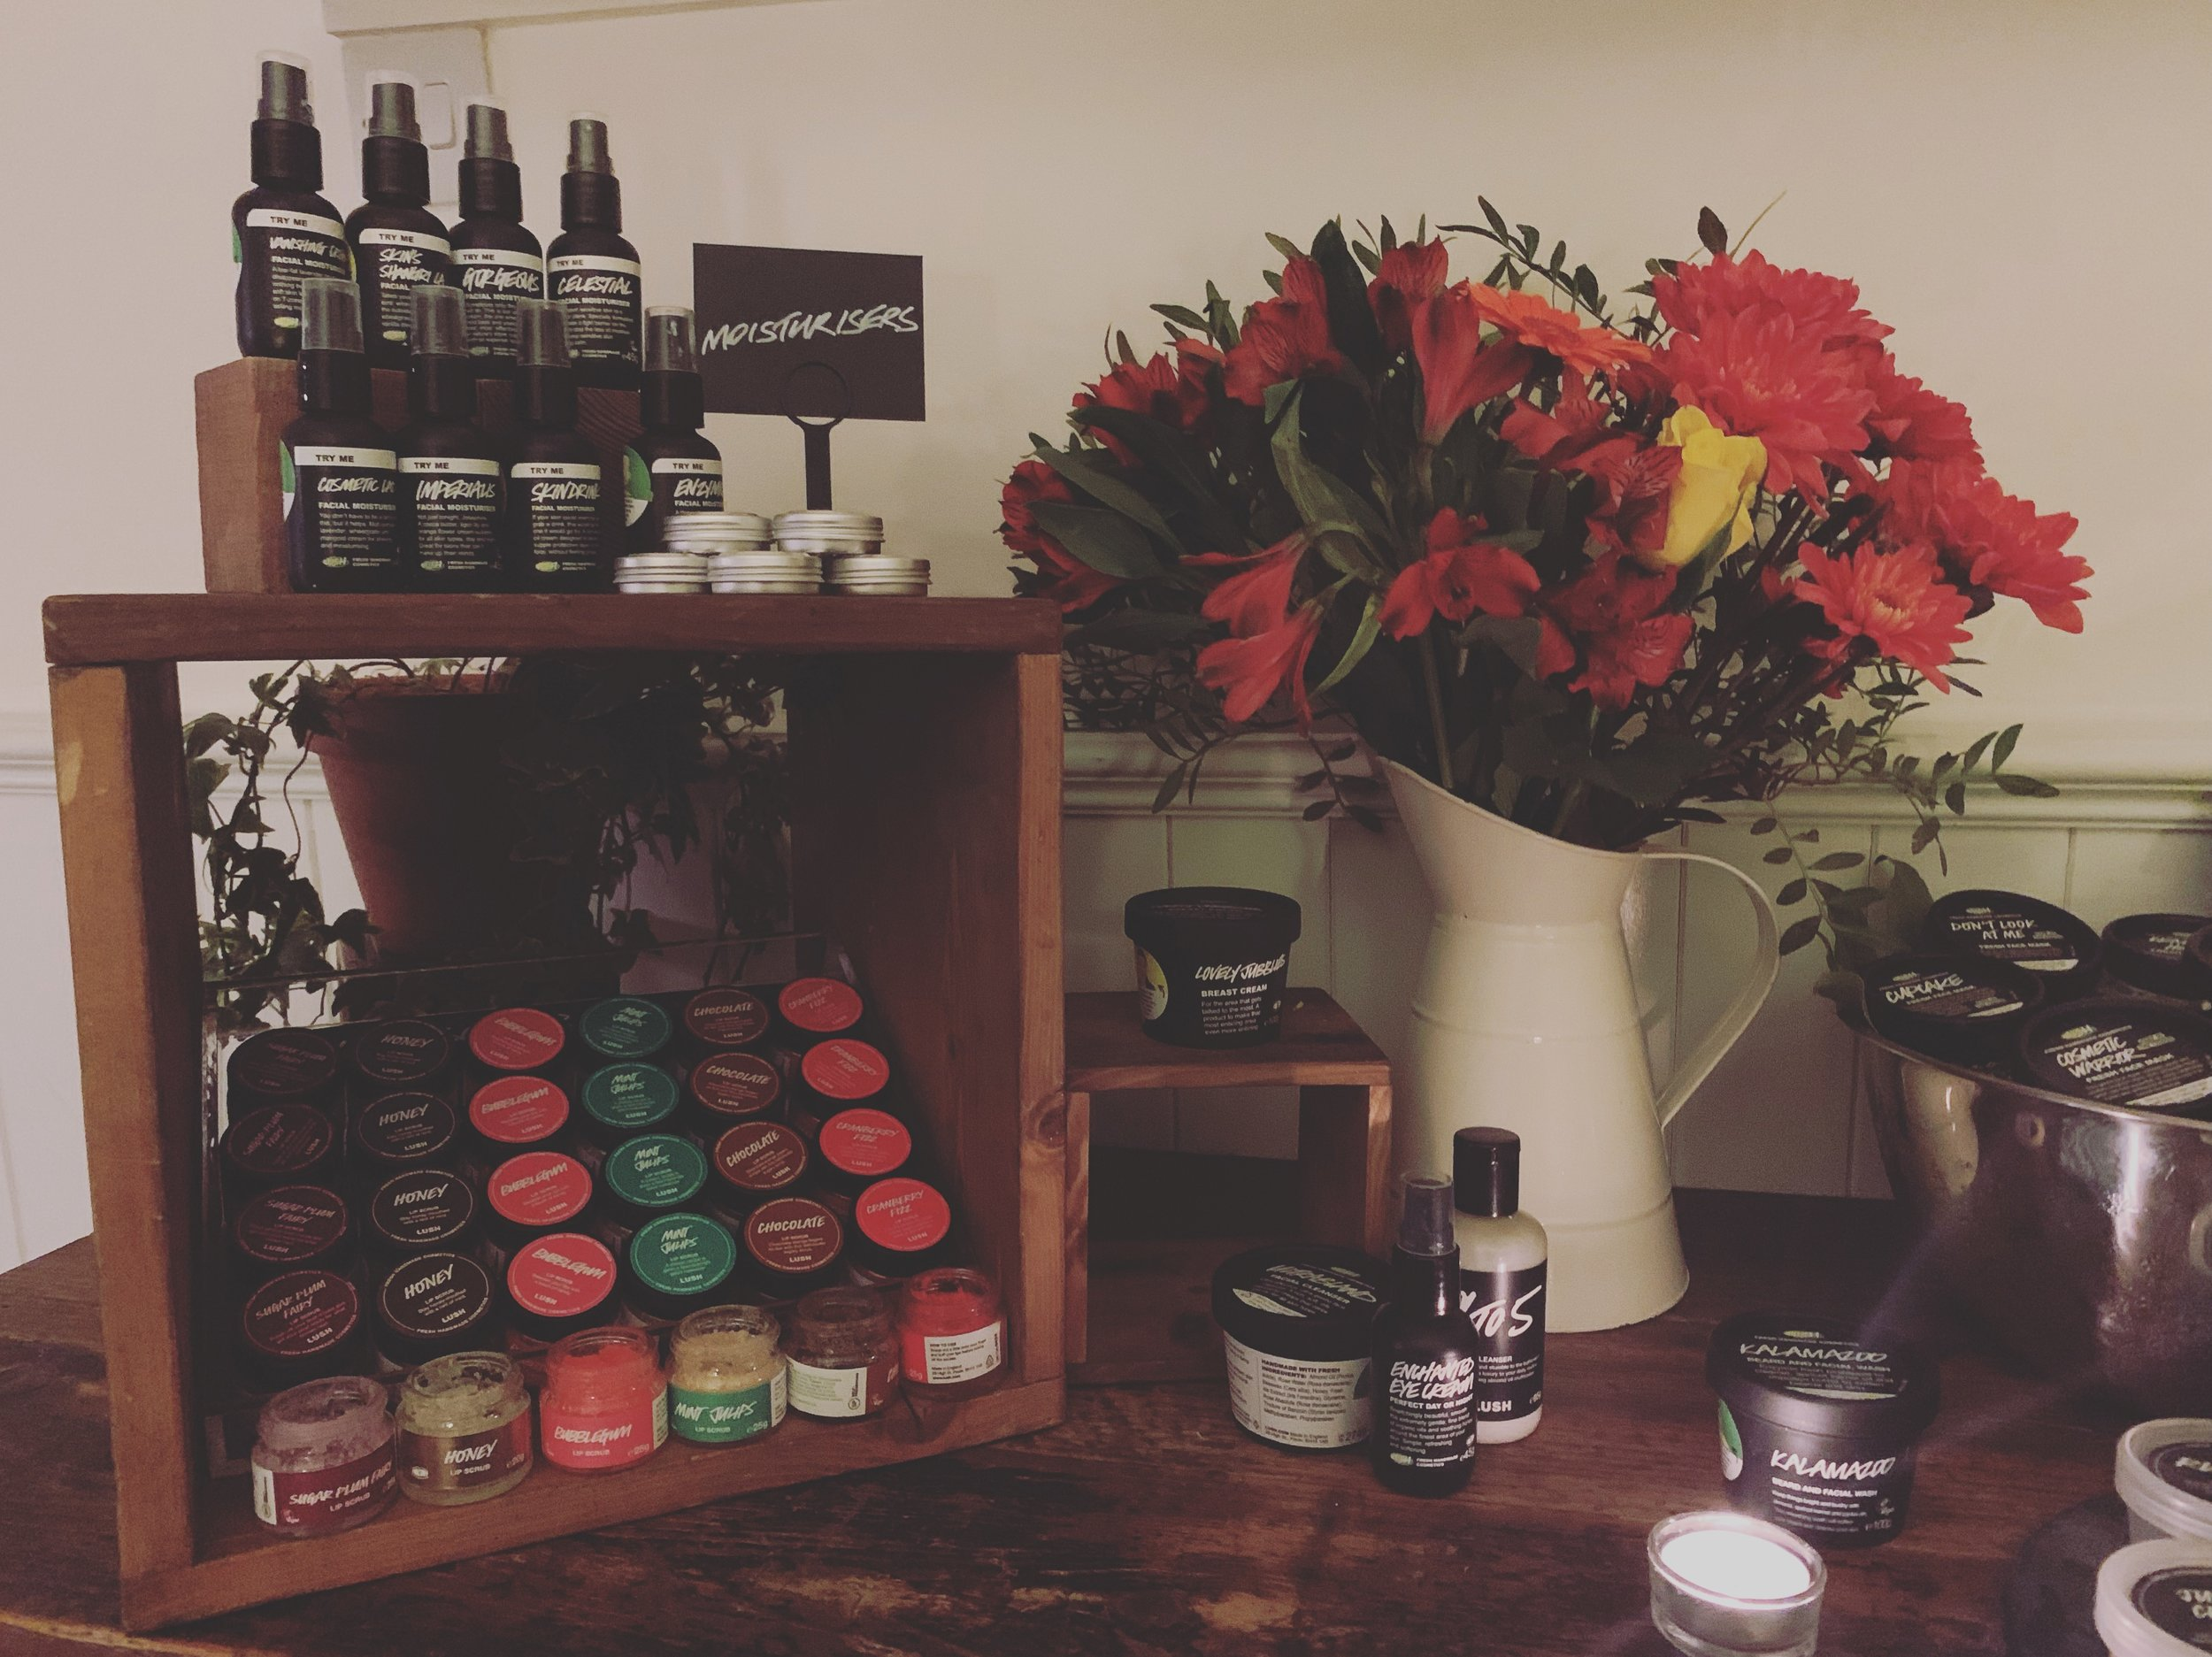 A photo of Lush products safe for pregnant women and a jug of bright flowers